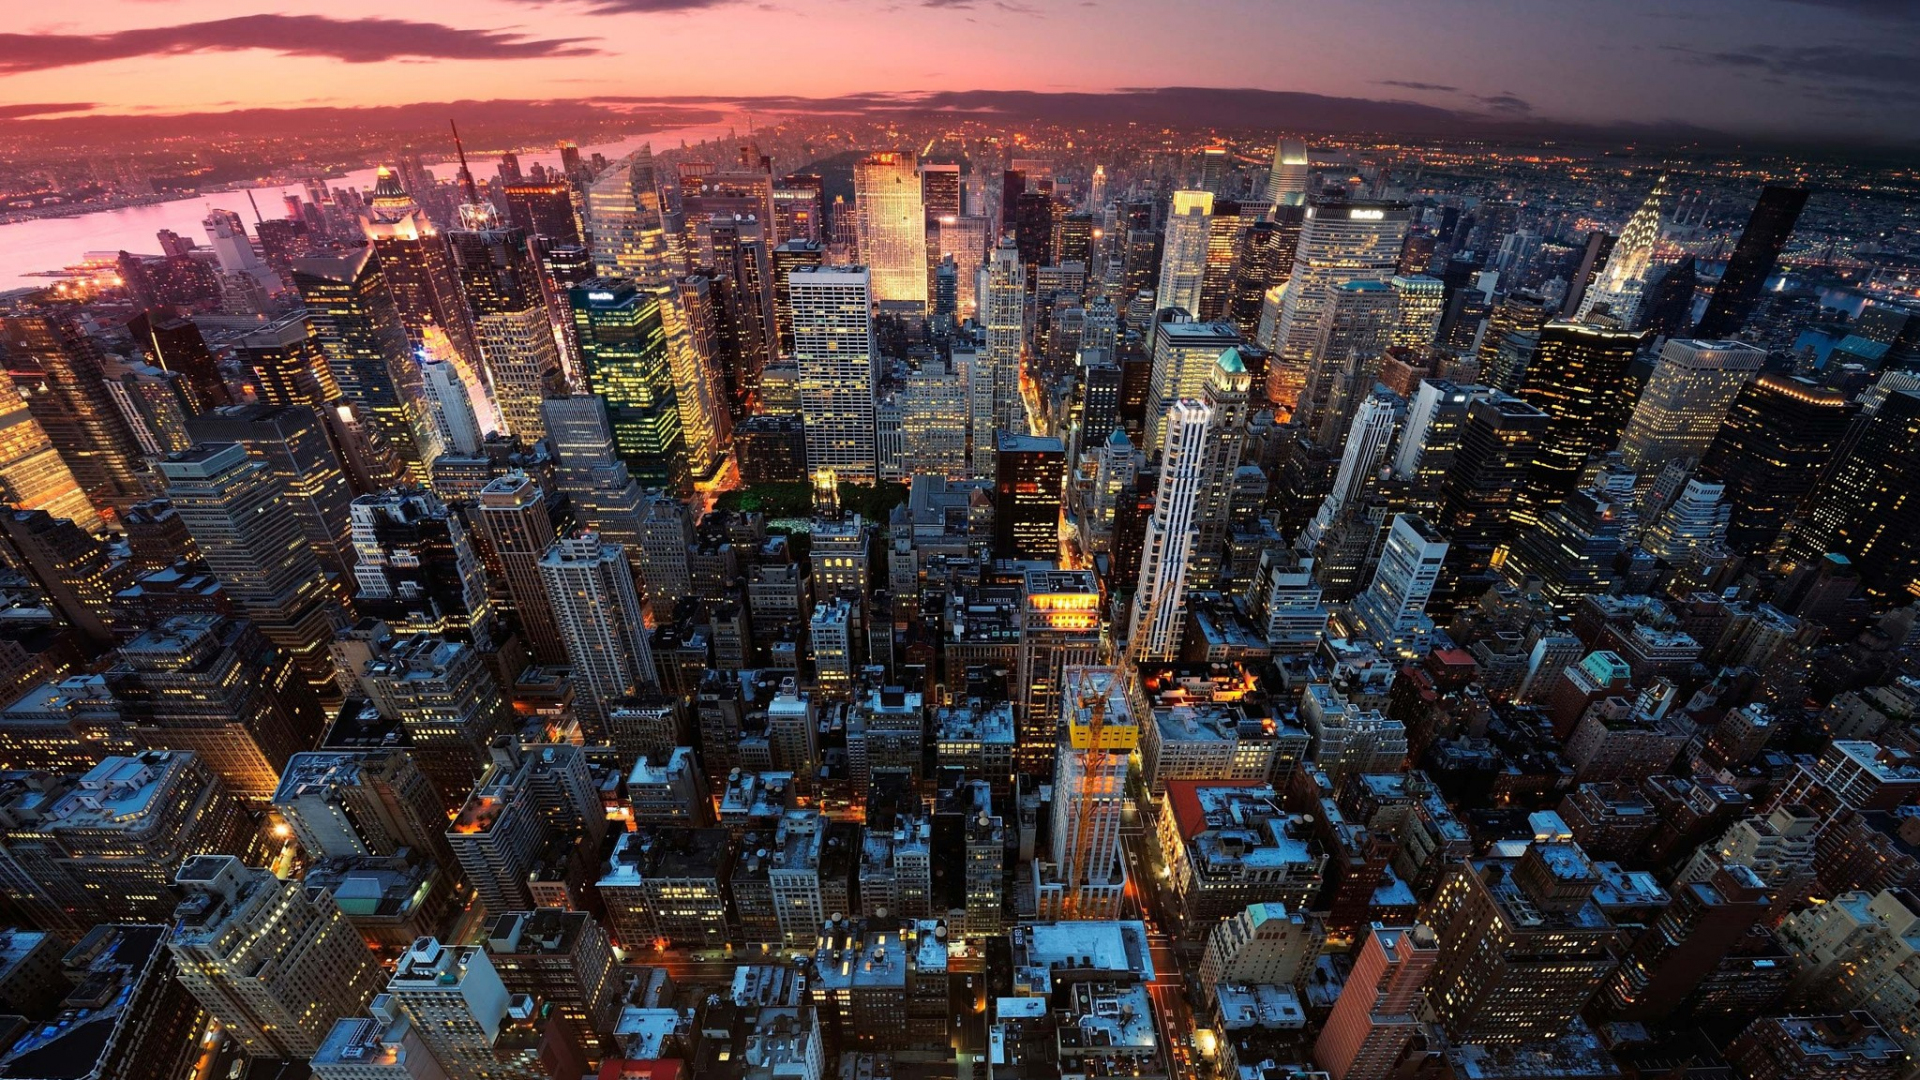 Desktop Wallpaper New York Aerial View City Night Skyscrapers Buildings Hd Image Picture Background Nlmowv